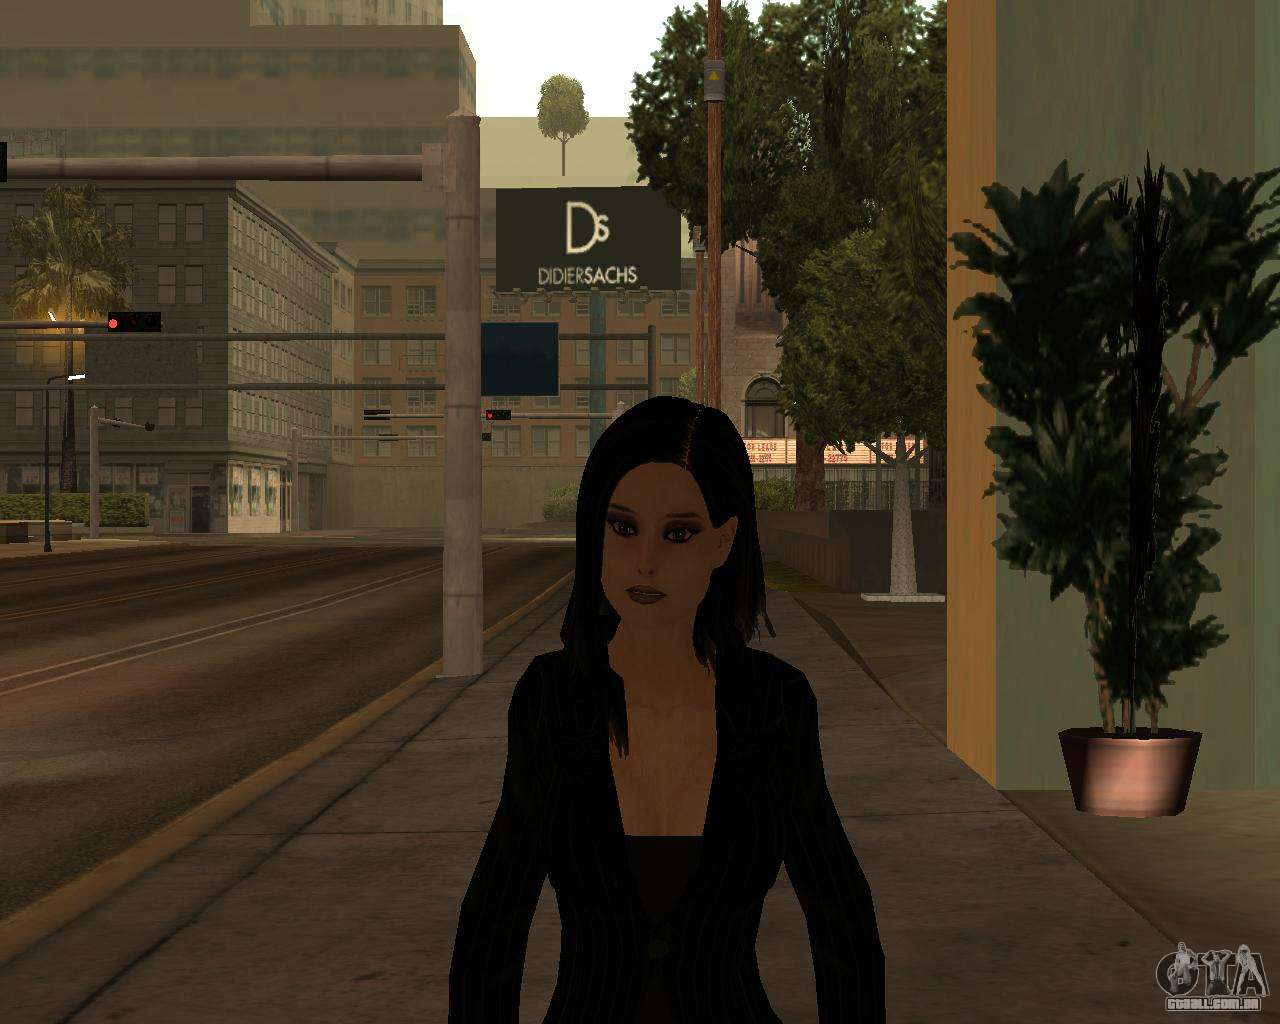 san andreas milf women San andreas's best 100% free milfs dating site meet thousands of single milfs in san andreas with mingle2's free personal ads and chat rooms our network of milfs women in san andreas is the perfect place to make friends or find a milf girlfriend in san andreas.